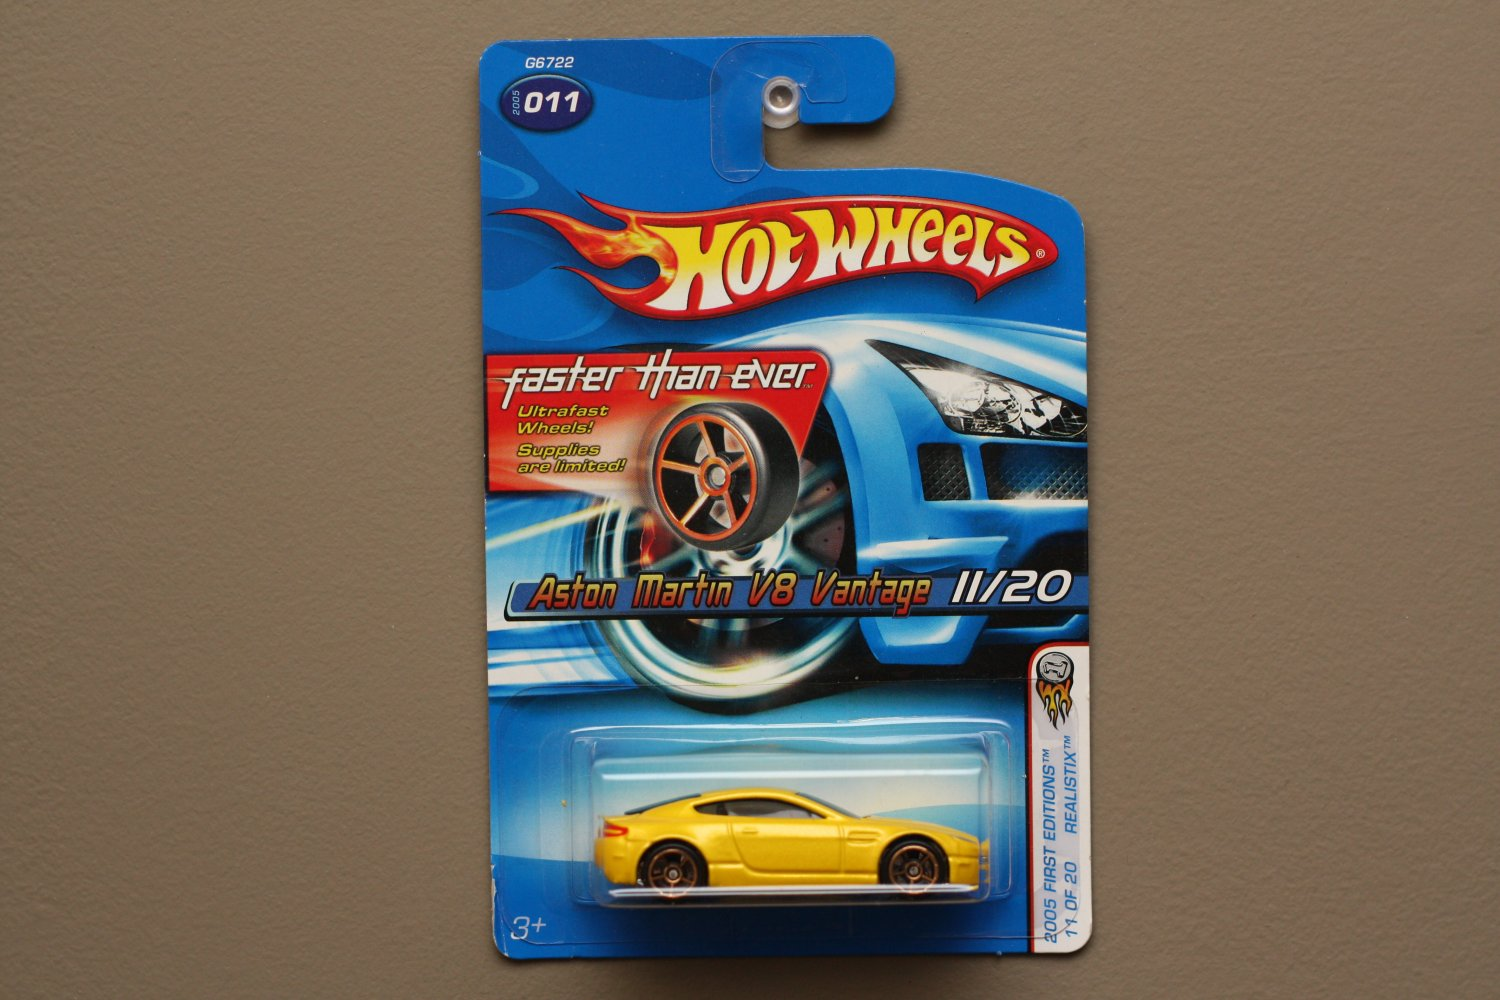 Hot Wheels 2005 First Editions (Realistix) Aston Martin V8 Vantage (yellow) (Faster Than Ever)